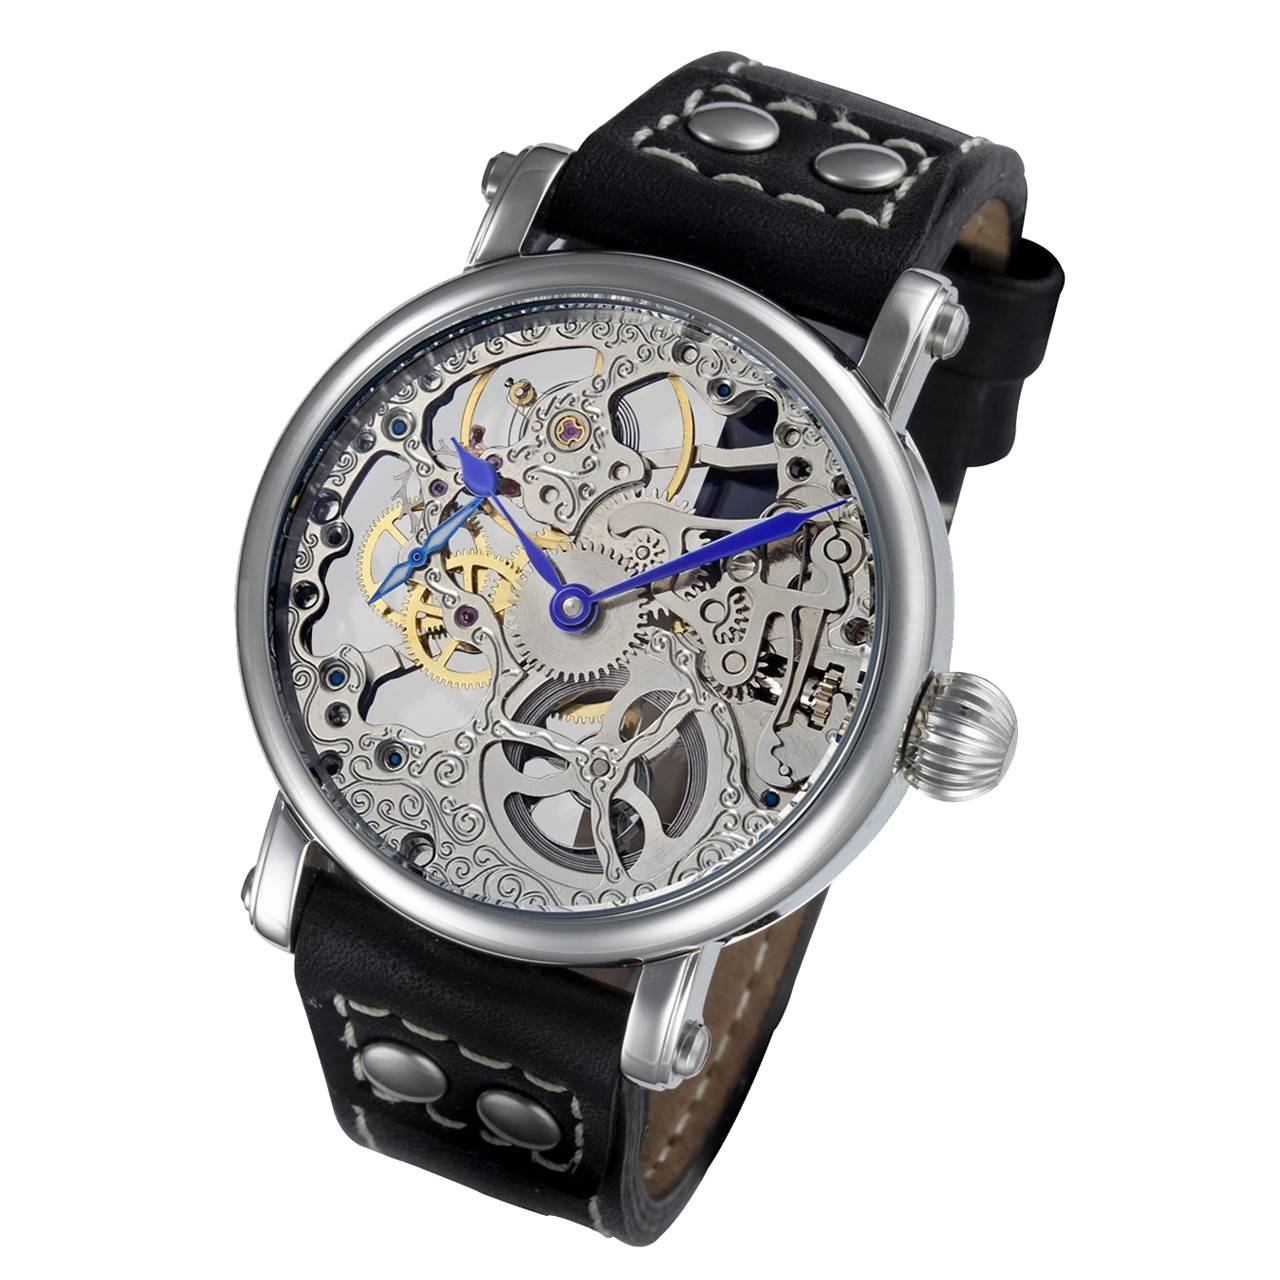 men s skeleton watches by invicta rougois adee kaye charles rougois mechanique silver skeleton watch leather black rivet band